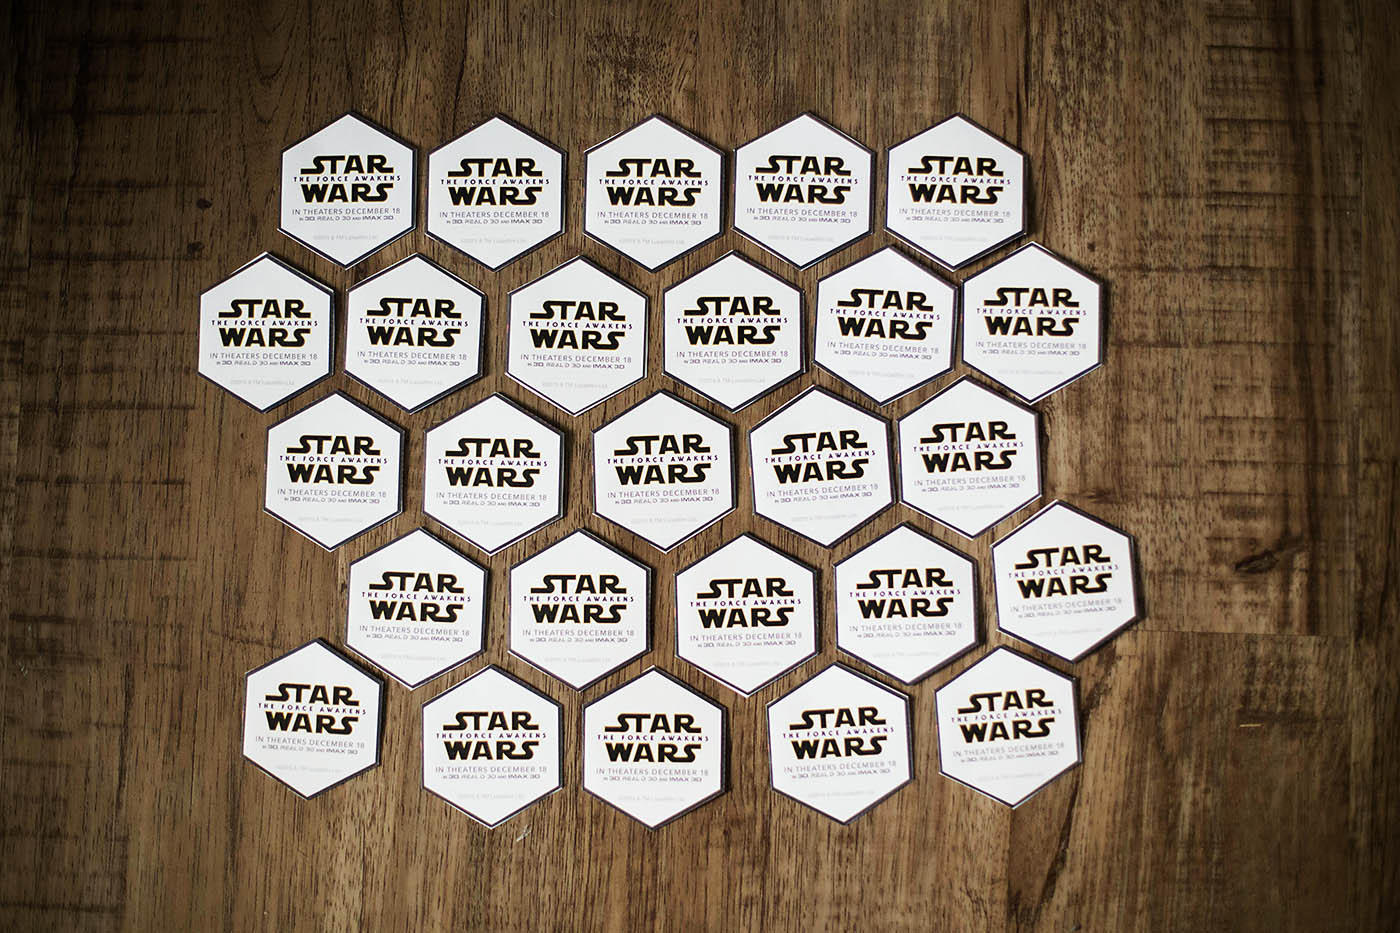 aftb-star-wars-printables-4-2